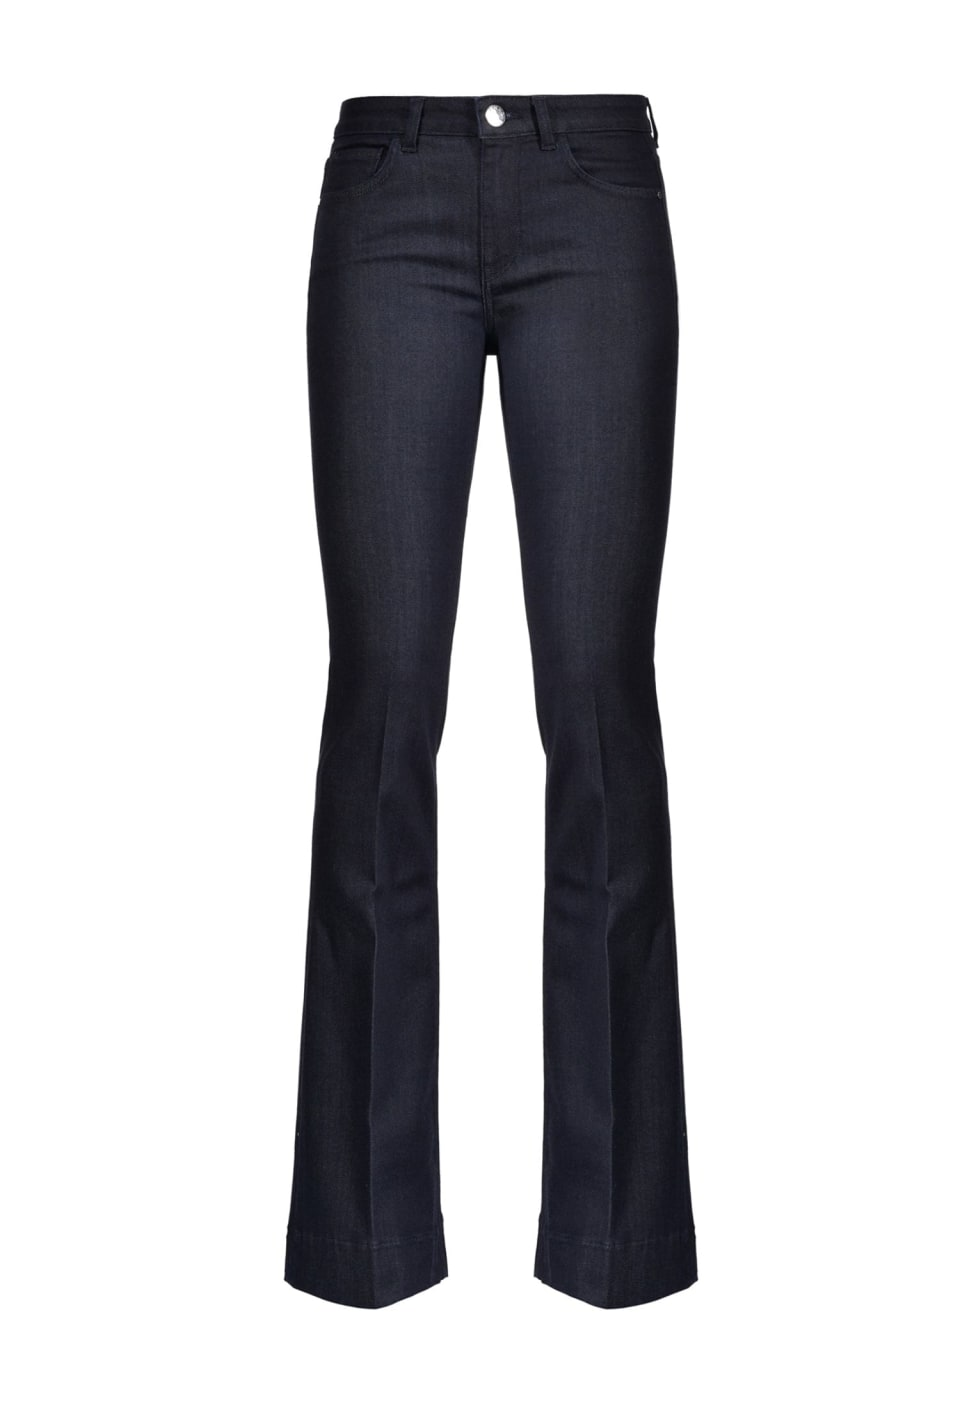 Flare jeans in stretch twill denim